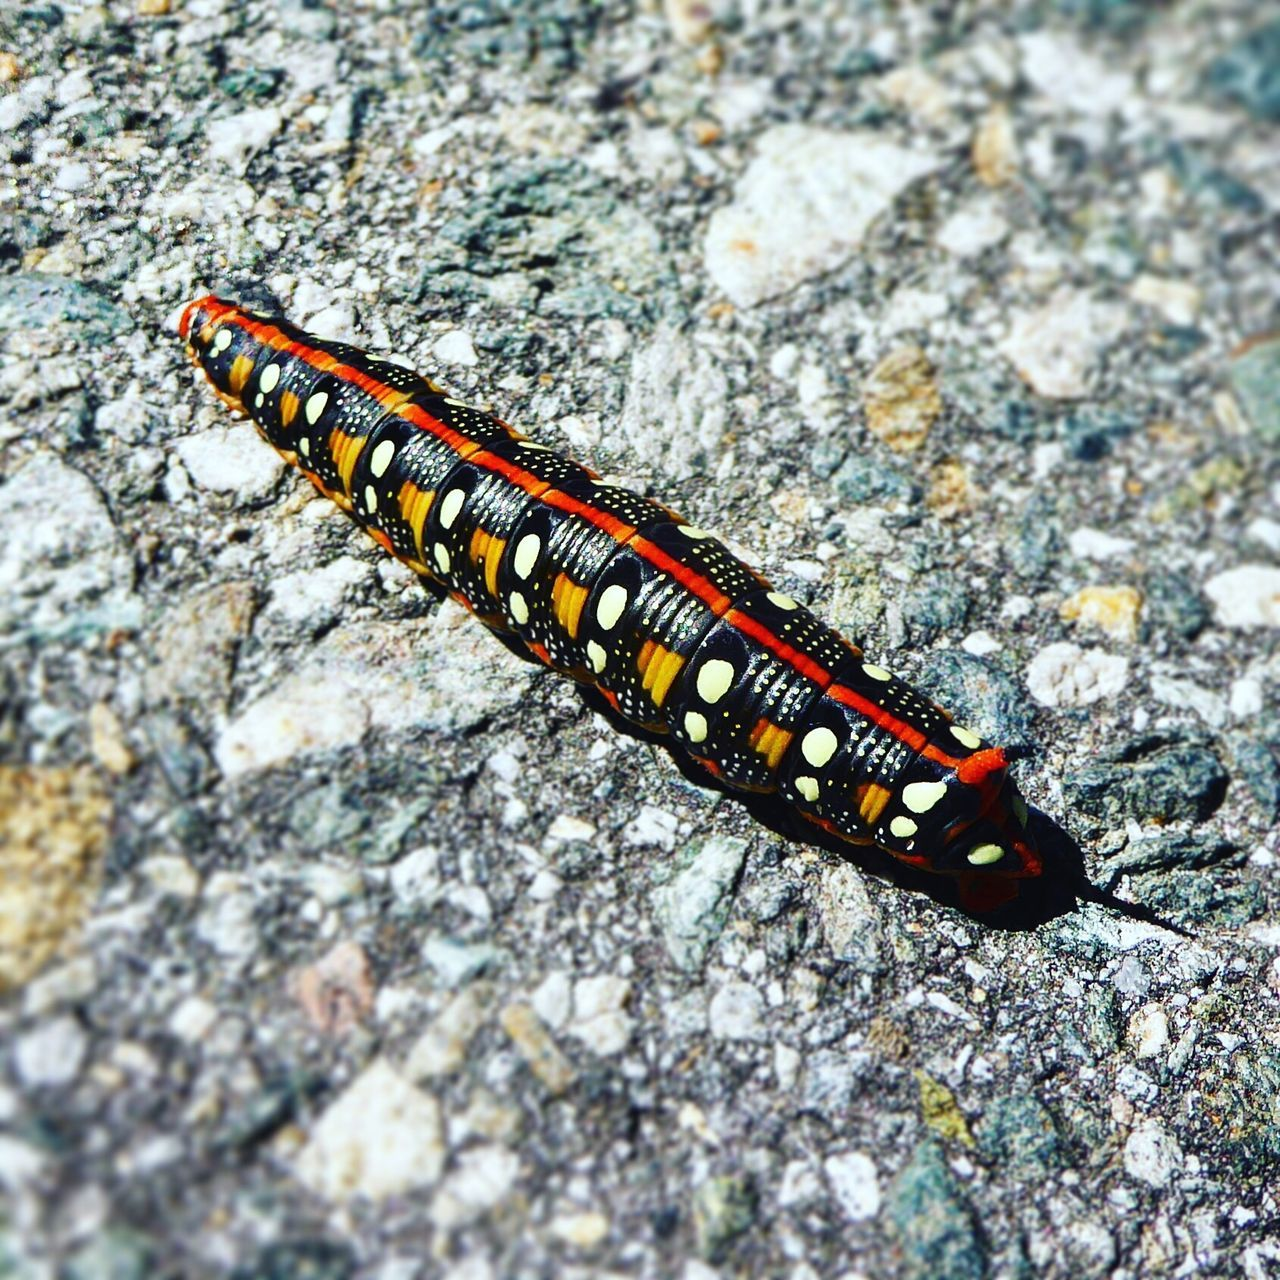 Animal Themes One Animal Animals In The Wild Insect No People Close-up Outdoors Animal Wildlife Day Caterpillar Nature